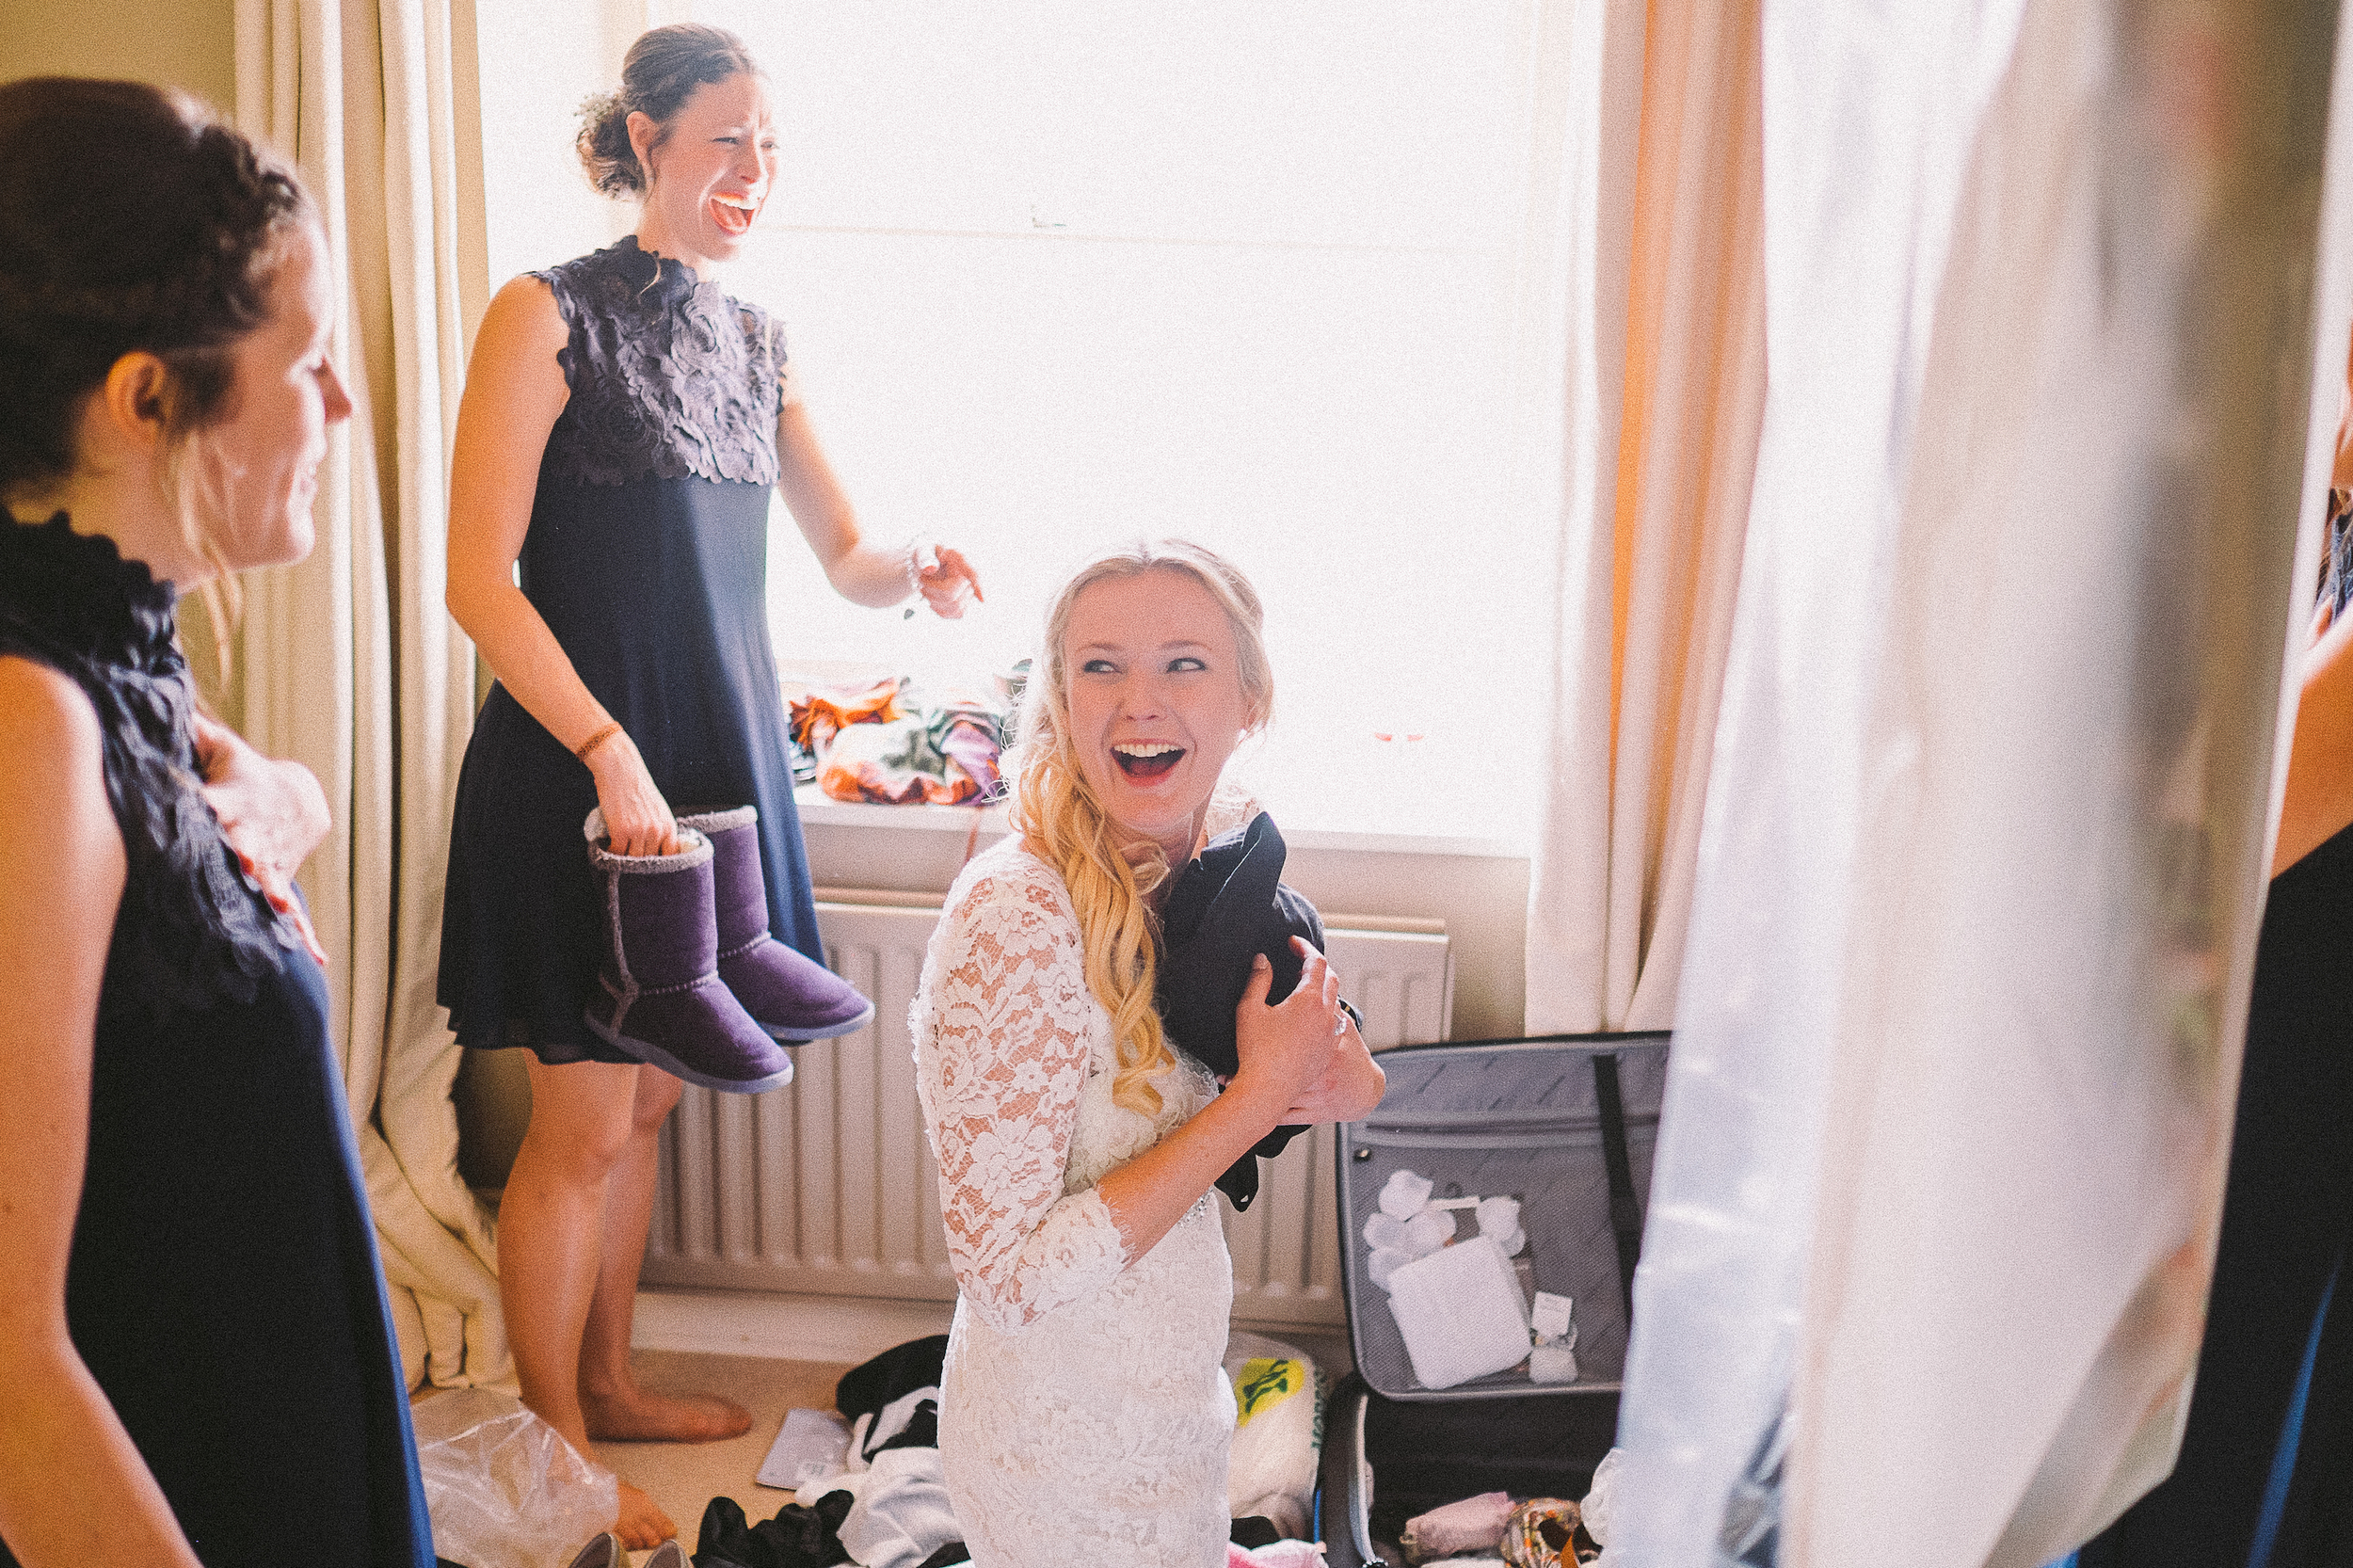 Bride clutching a bag, kneeling down among an open suitcase while one of her bridesmaids points and laughs.  Why would this be in a wedding album?